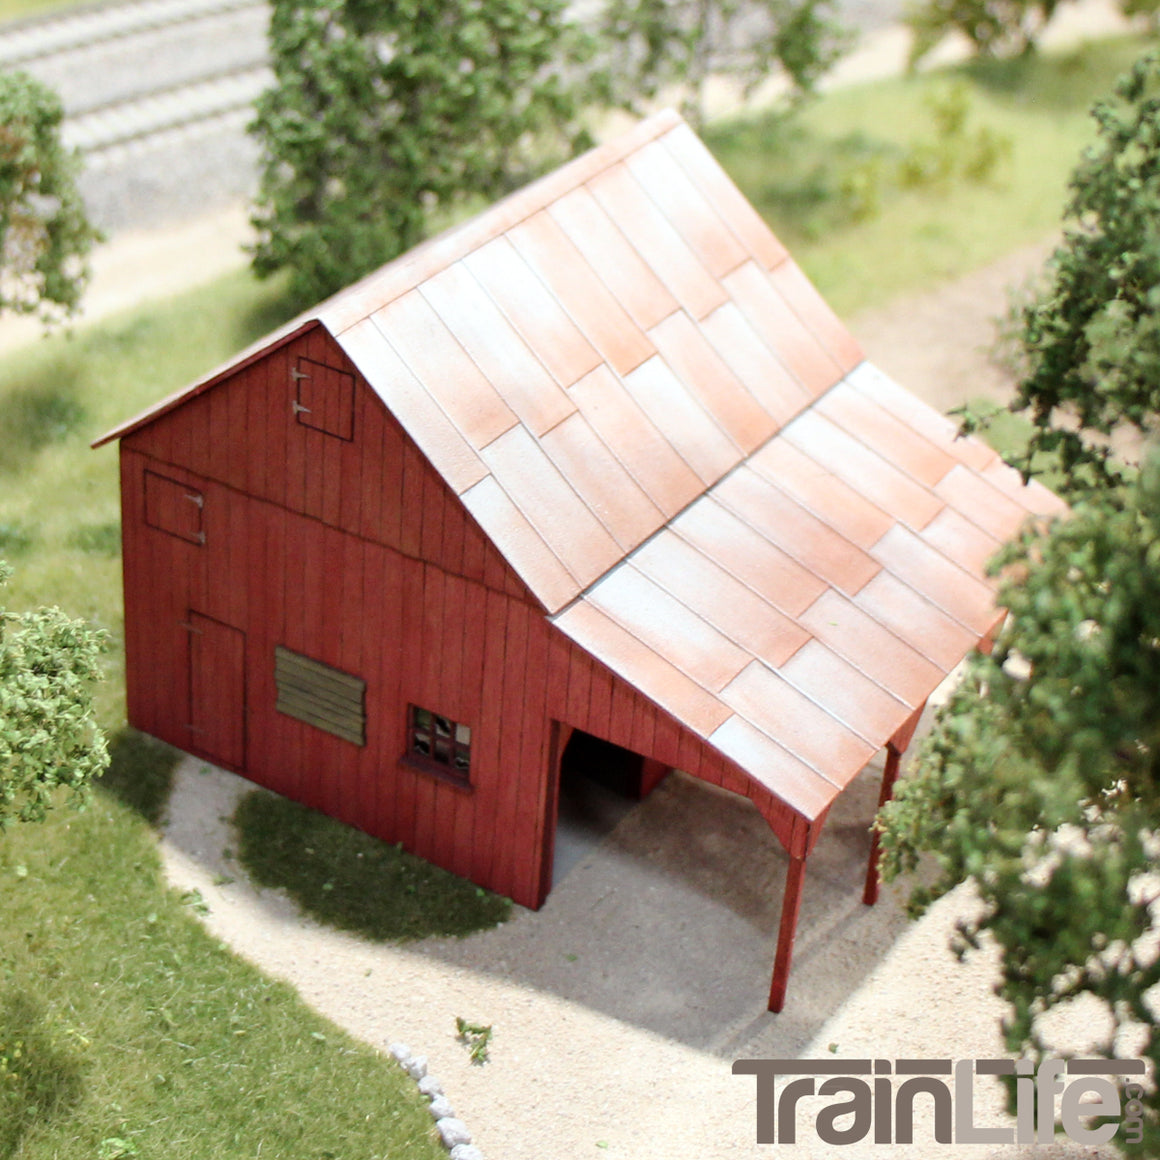 HO Scale: Implement Barn & Corral